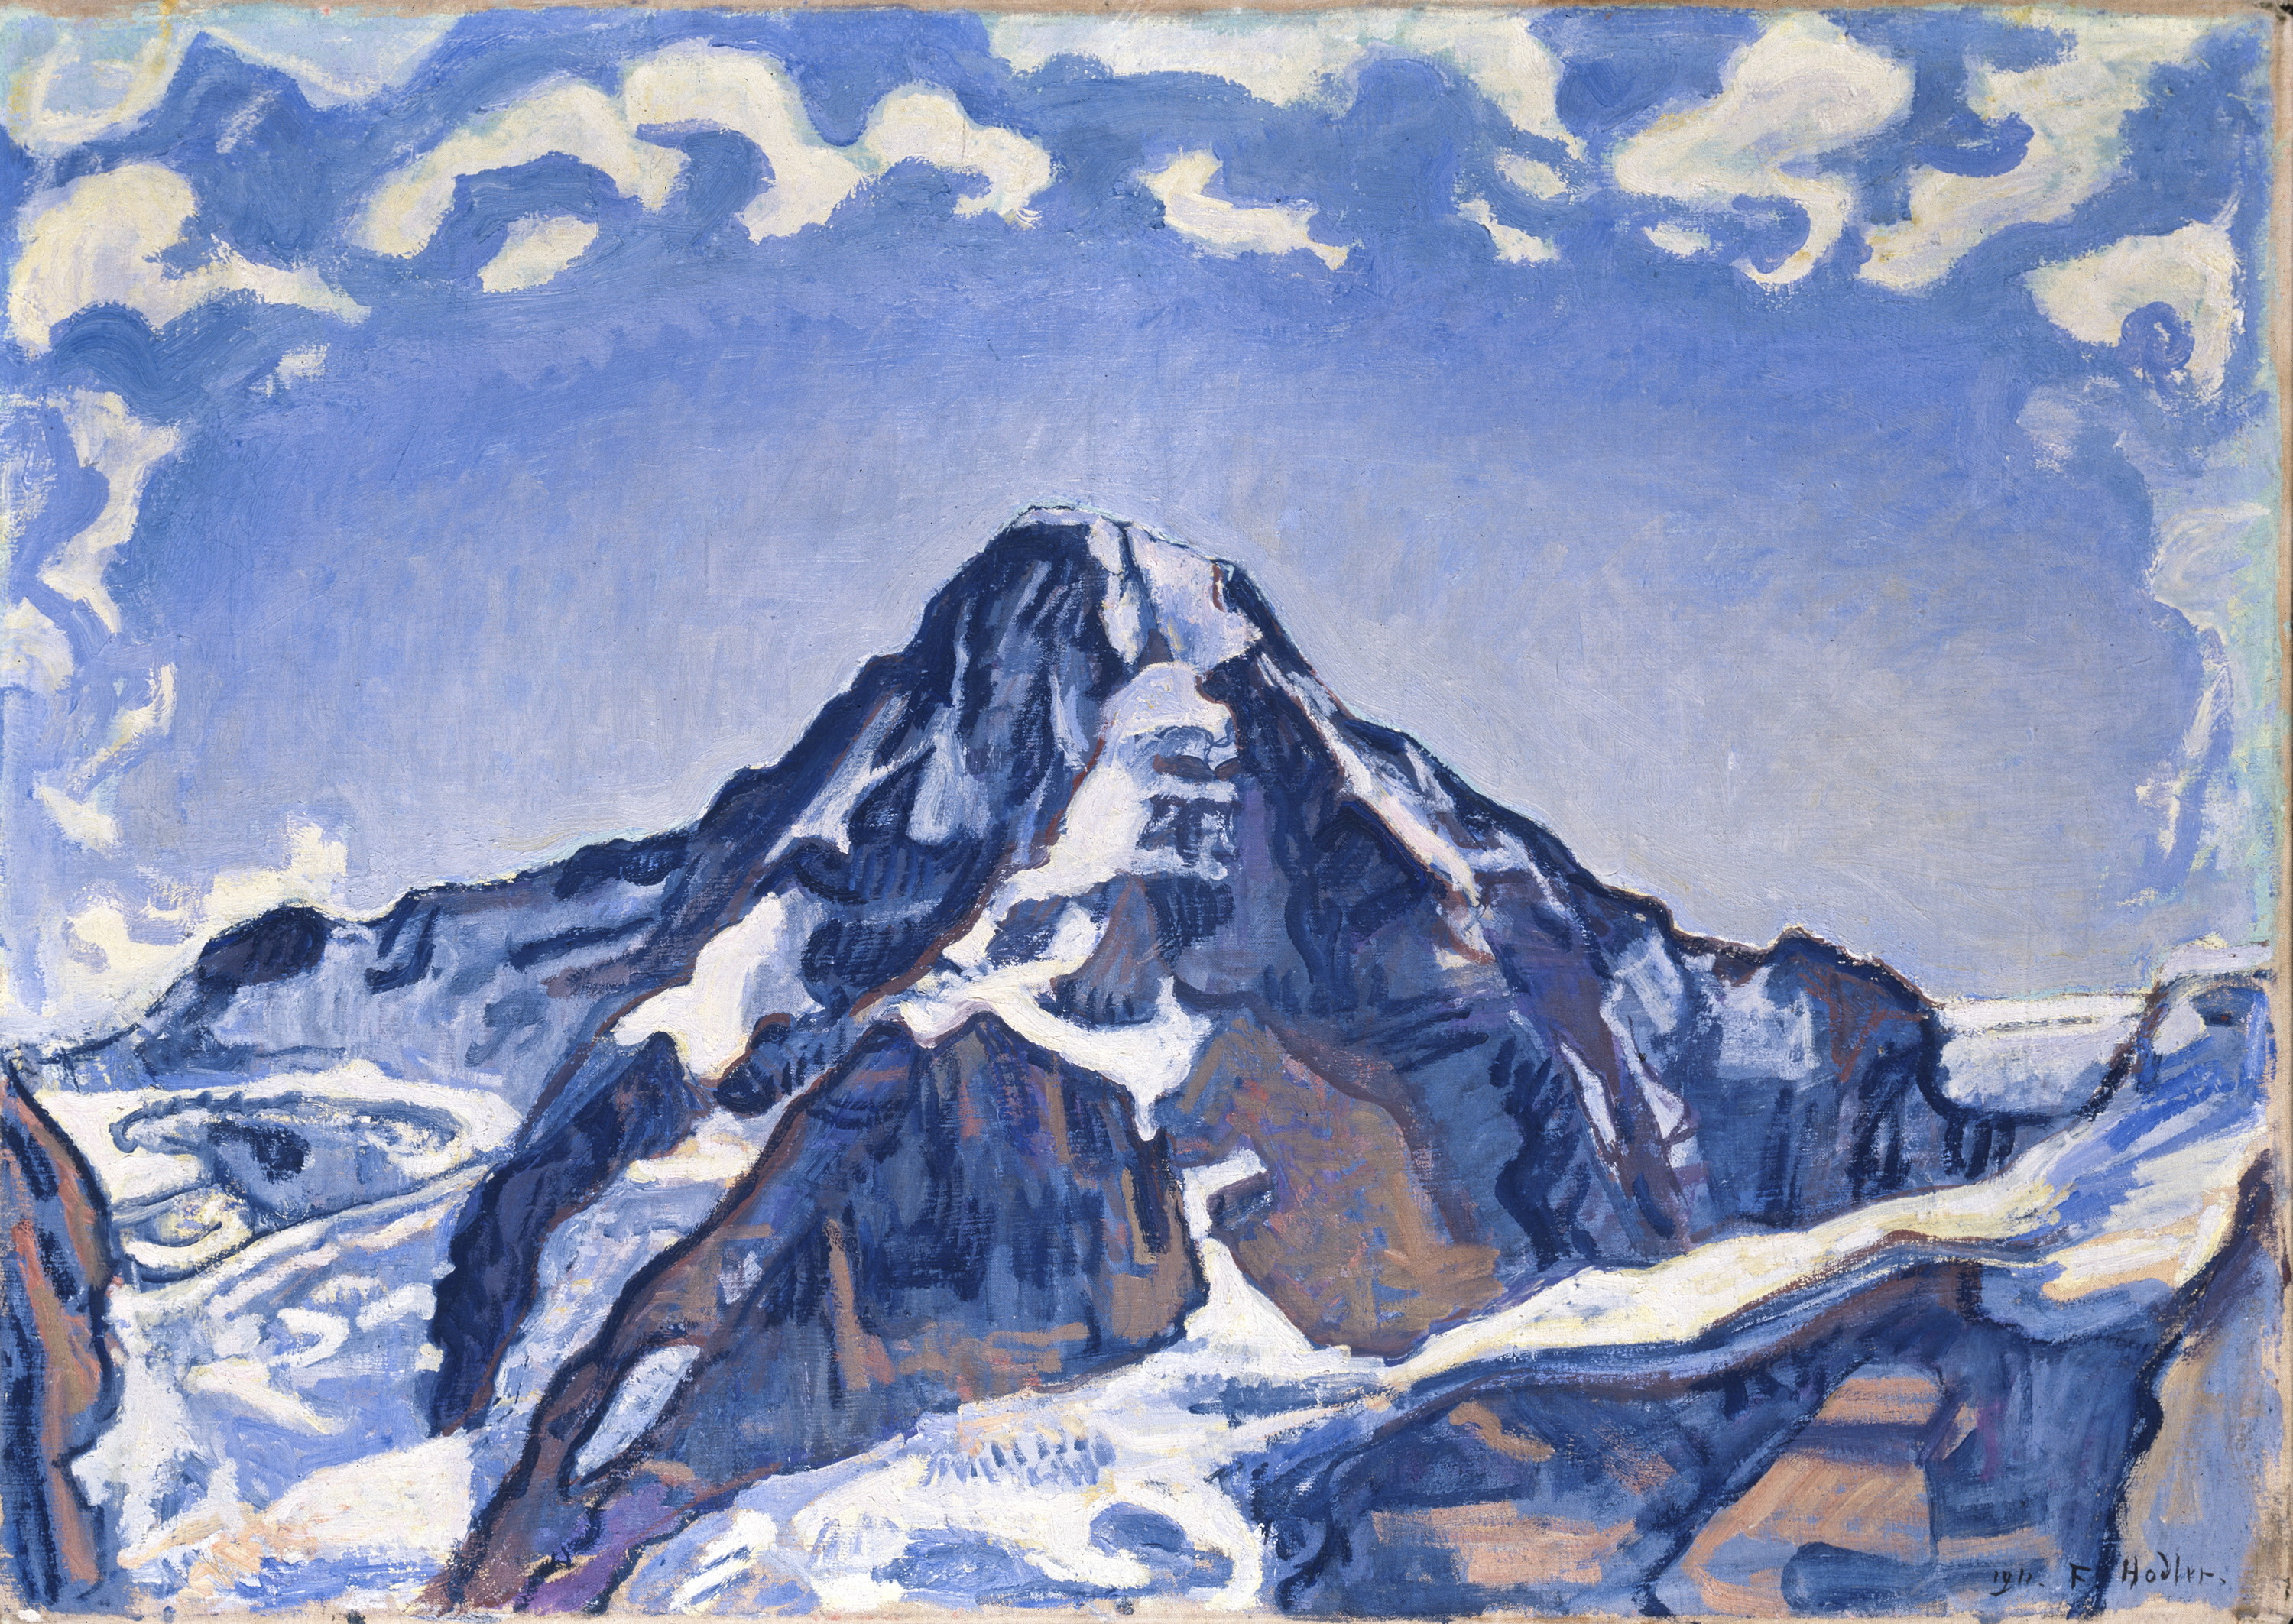 Hodler, Monet, Munch, peindre l'impossible